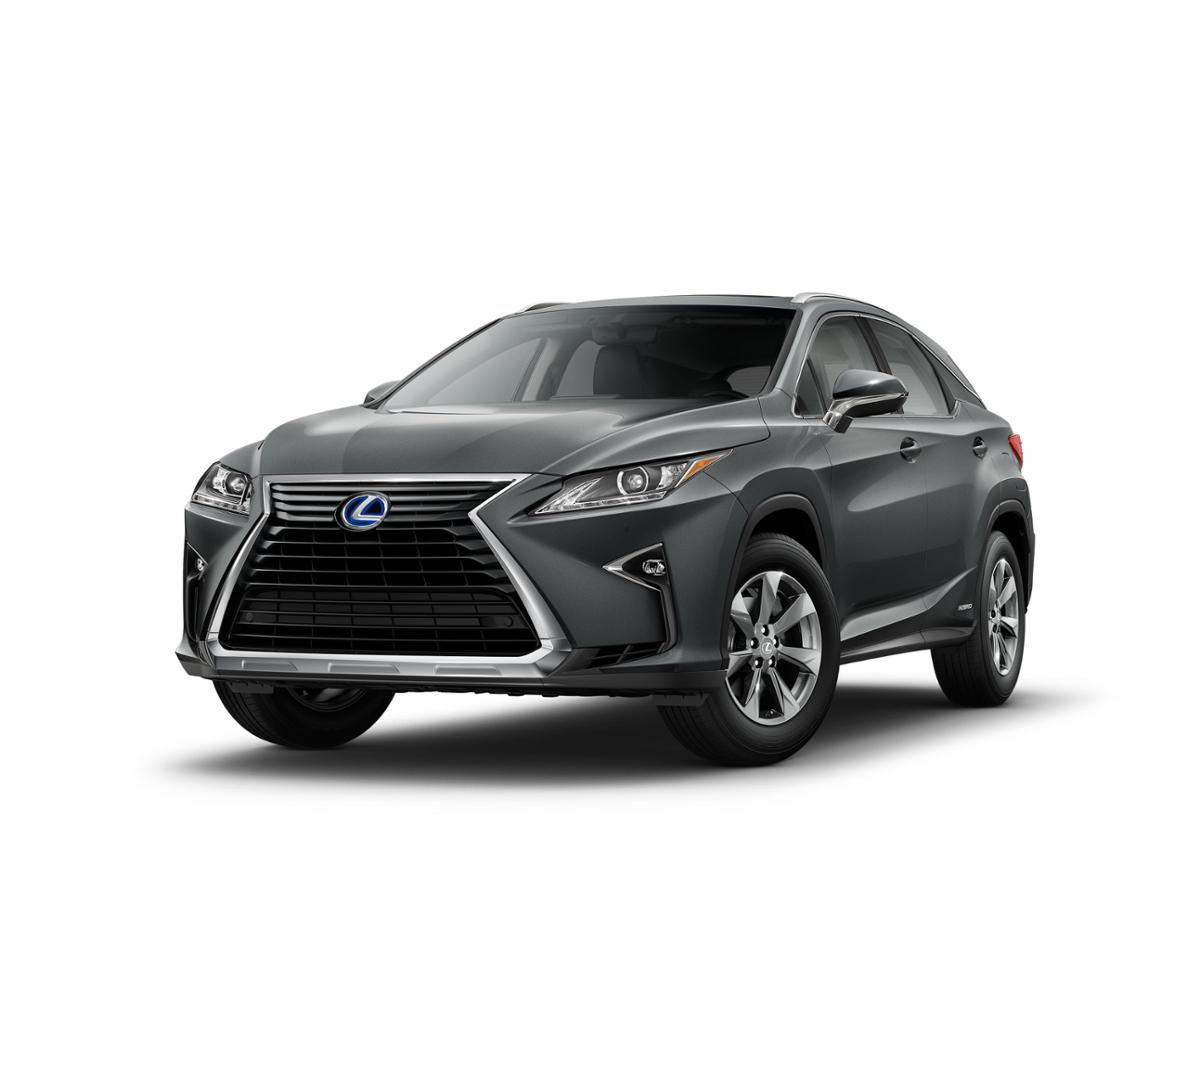 2017 Lexus RX 450h Vehicle Photo in Mission Viejo, CA 92692